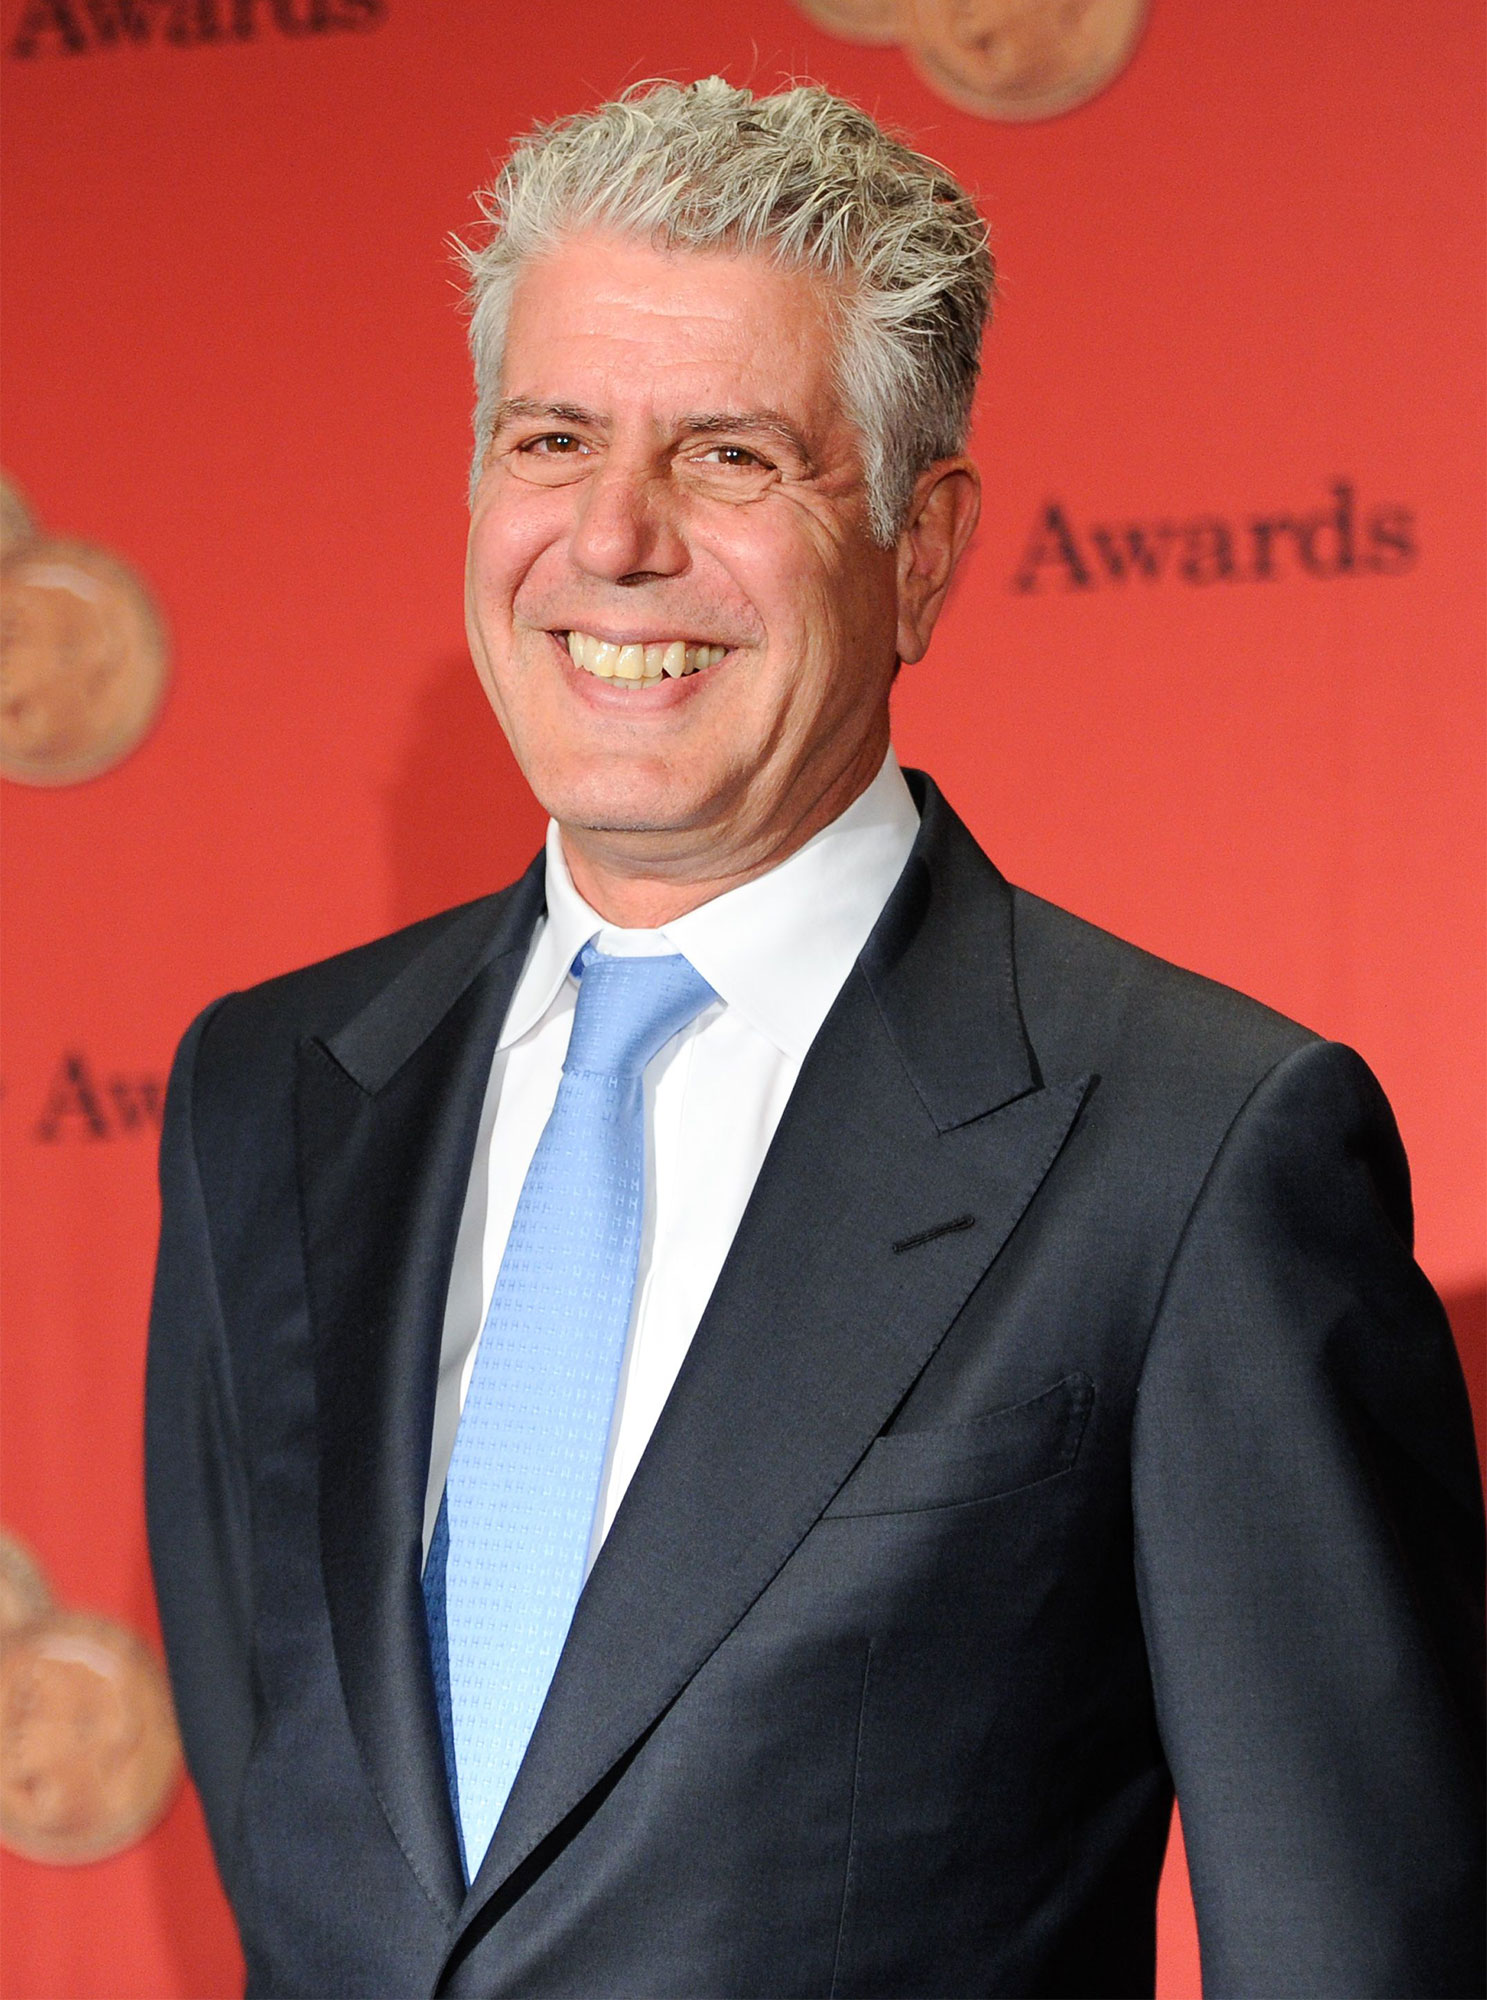 2014 George Foster Peabody Awards, New York, USA - 19 May 2014